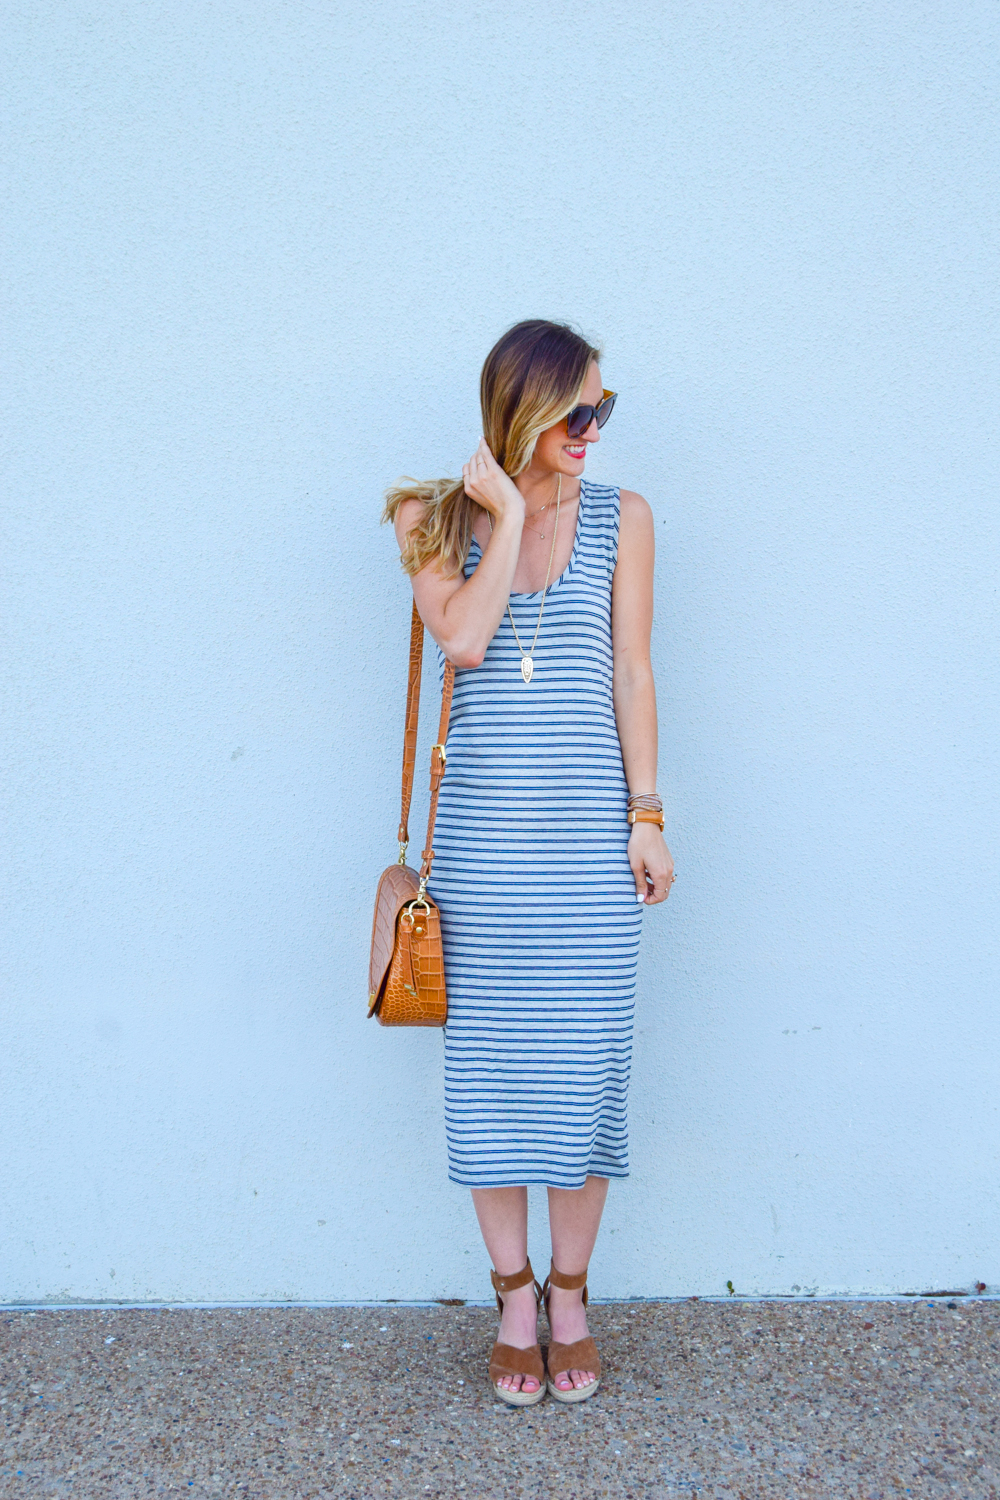 livvyland-blog-olivia-watson-austin-texas-fashion-blogger-striped-midi-dress-green-utility-jacket-brahmin-sonny-crossbody-handbag-prada-cat-eye-sunglasses-casual-outfit-8